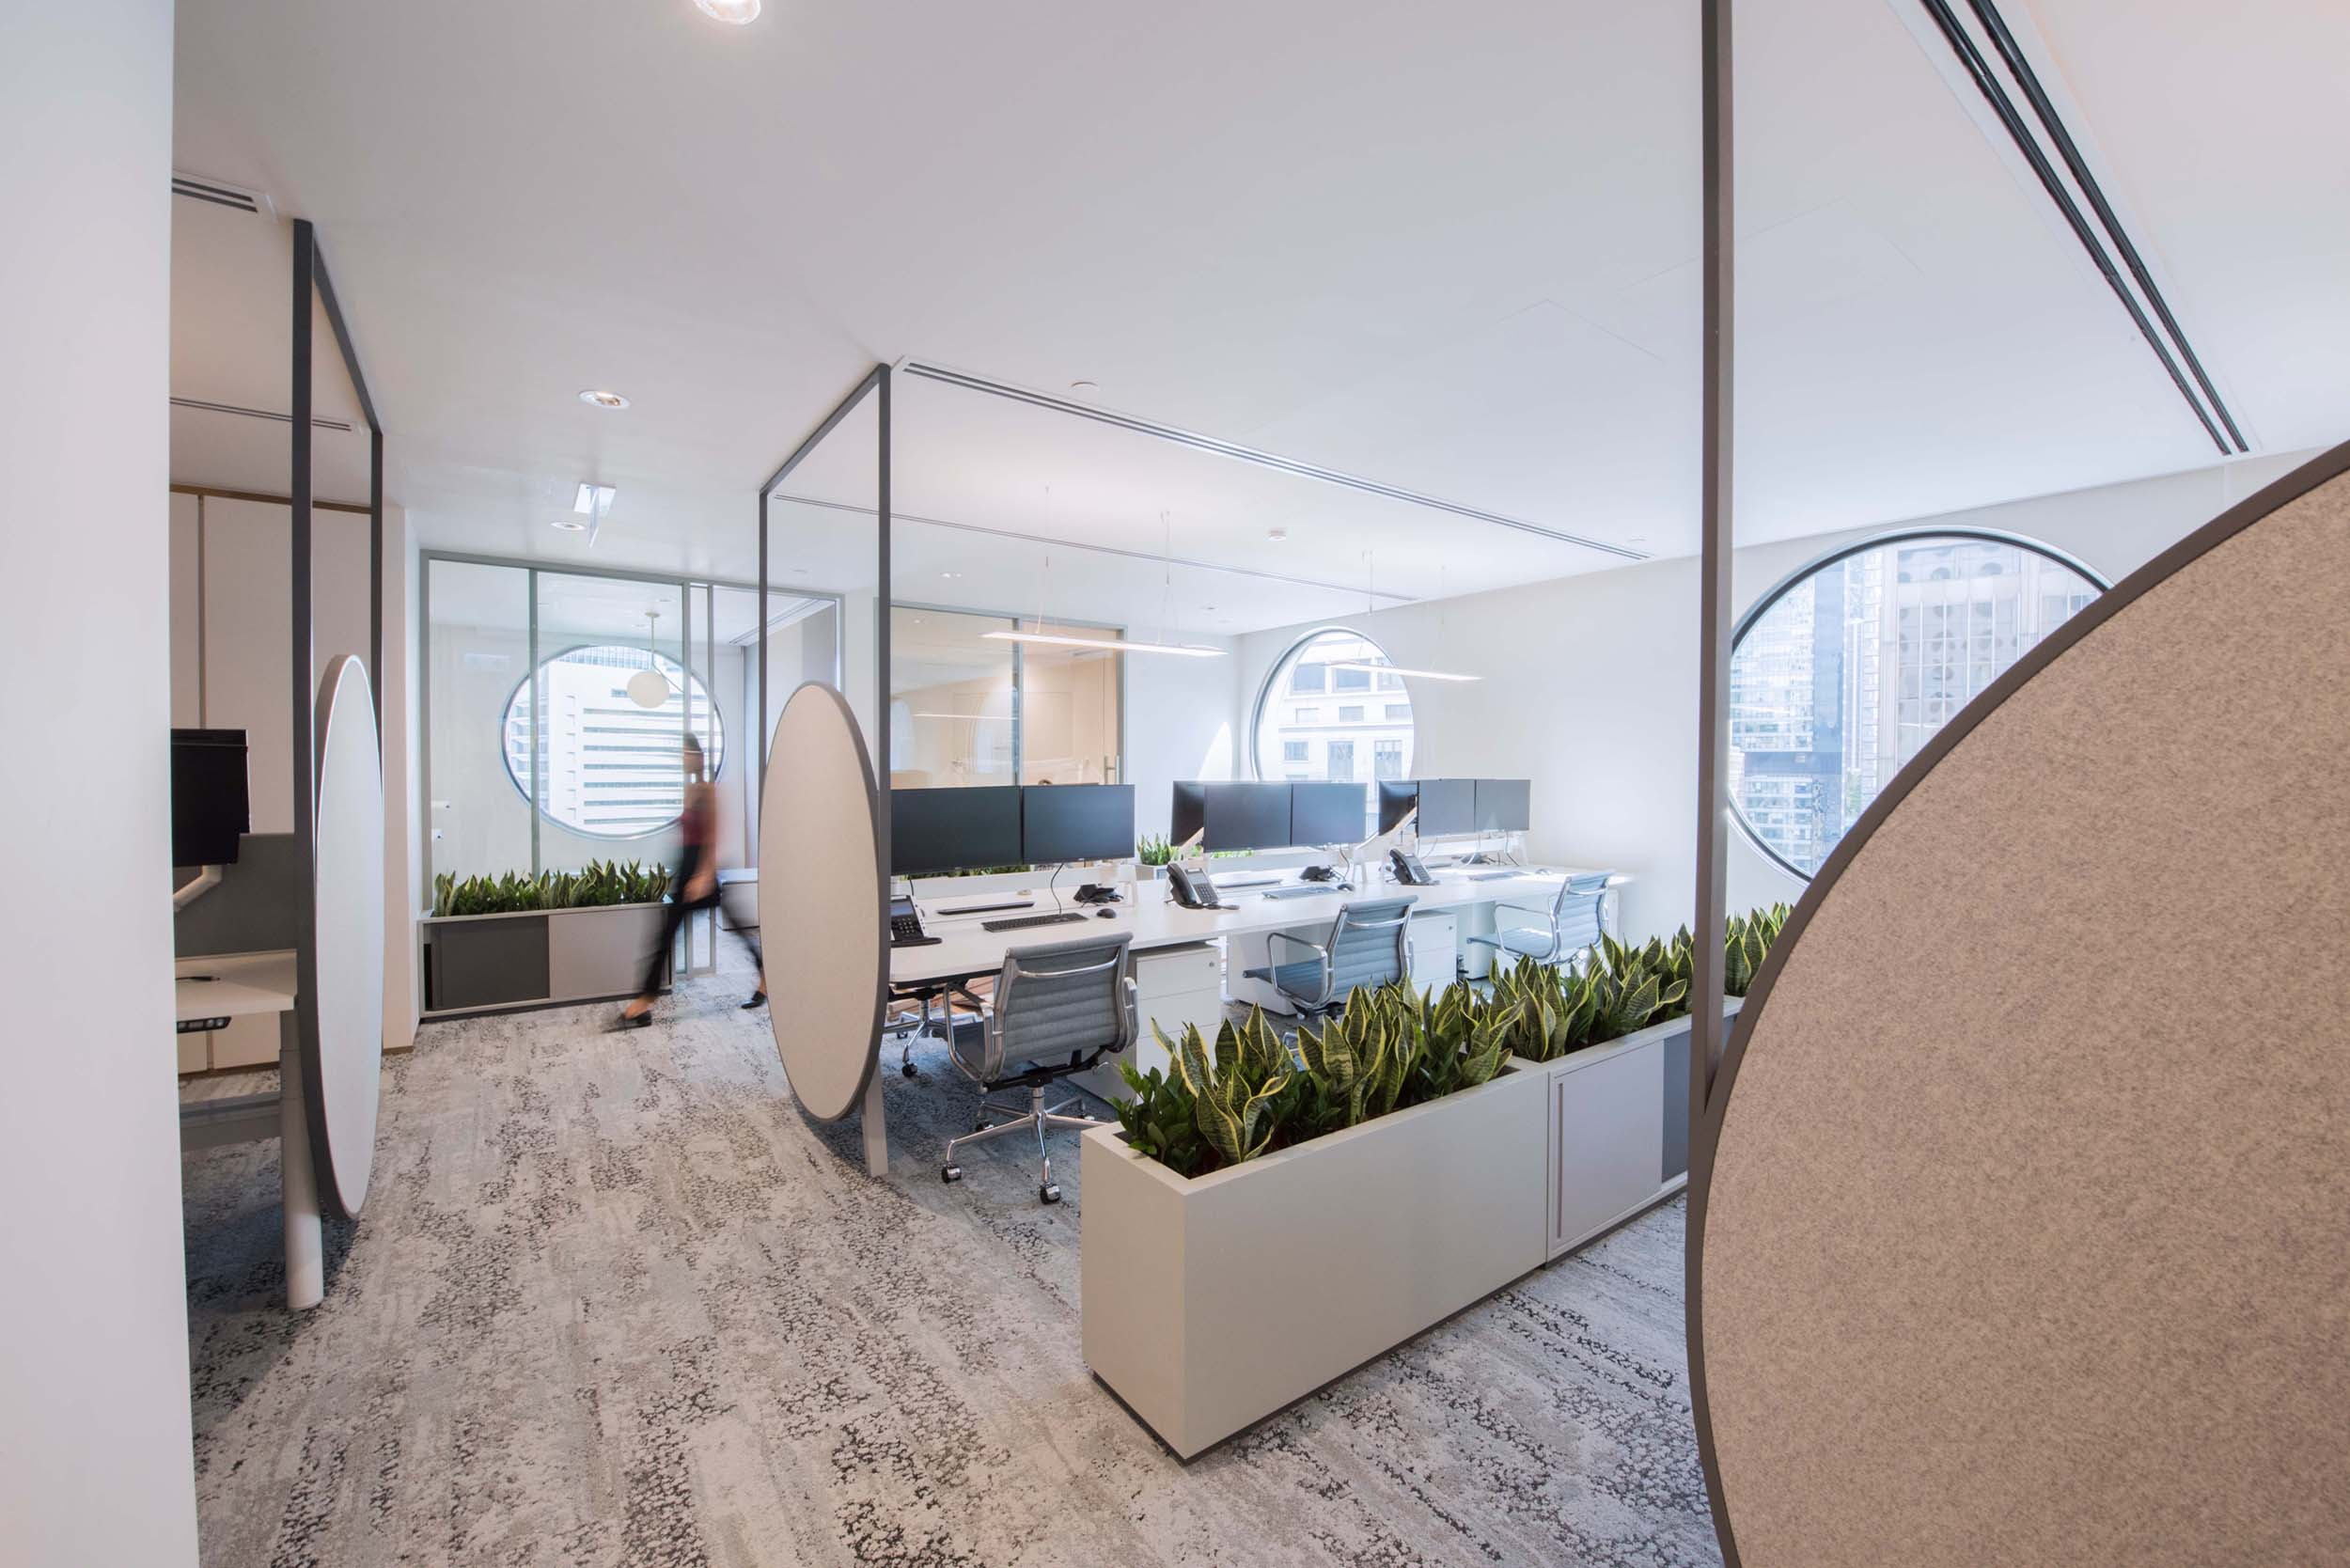 7_Bean Buro_Workplace_Grosvenor_Photos.jpg